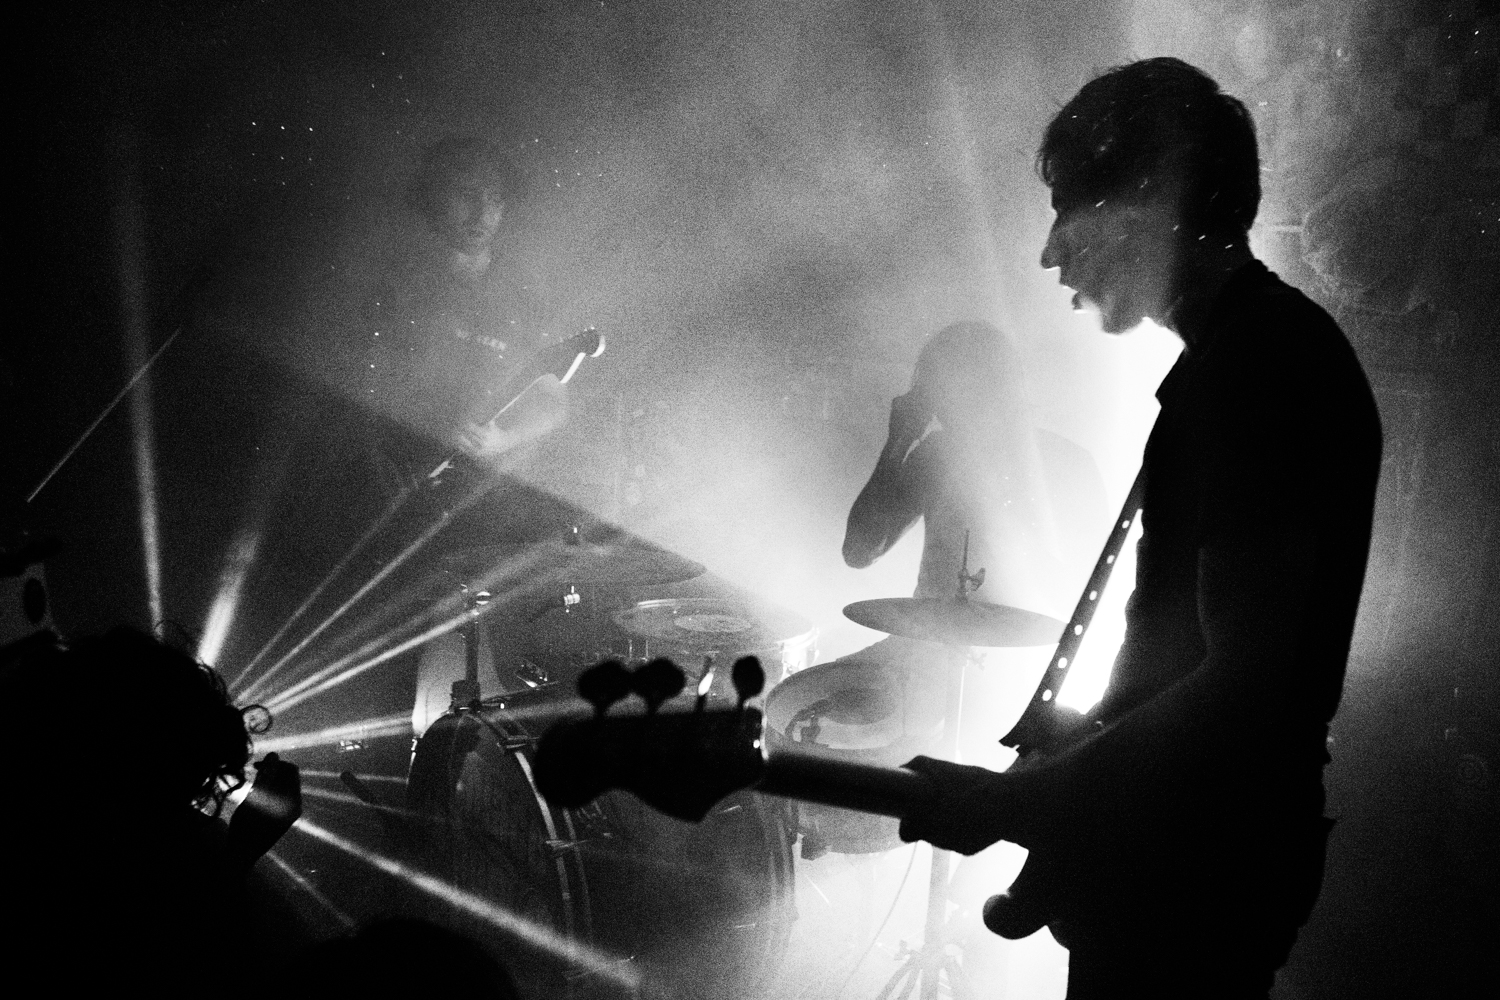 A Place to Bury Strangers live during their last show at Death By Audio on November 22, 2014